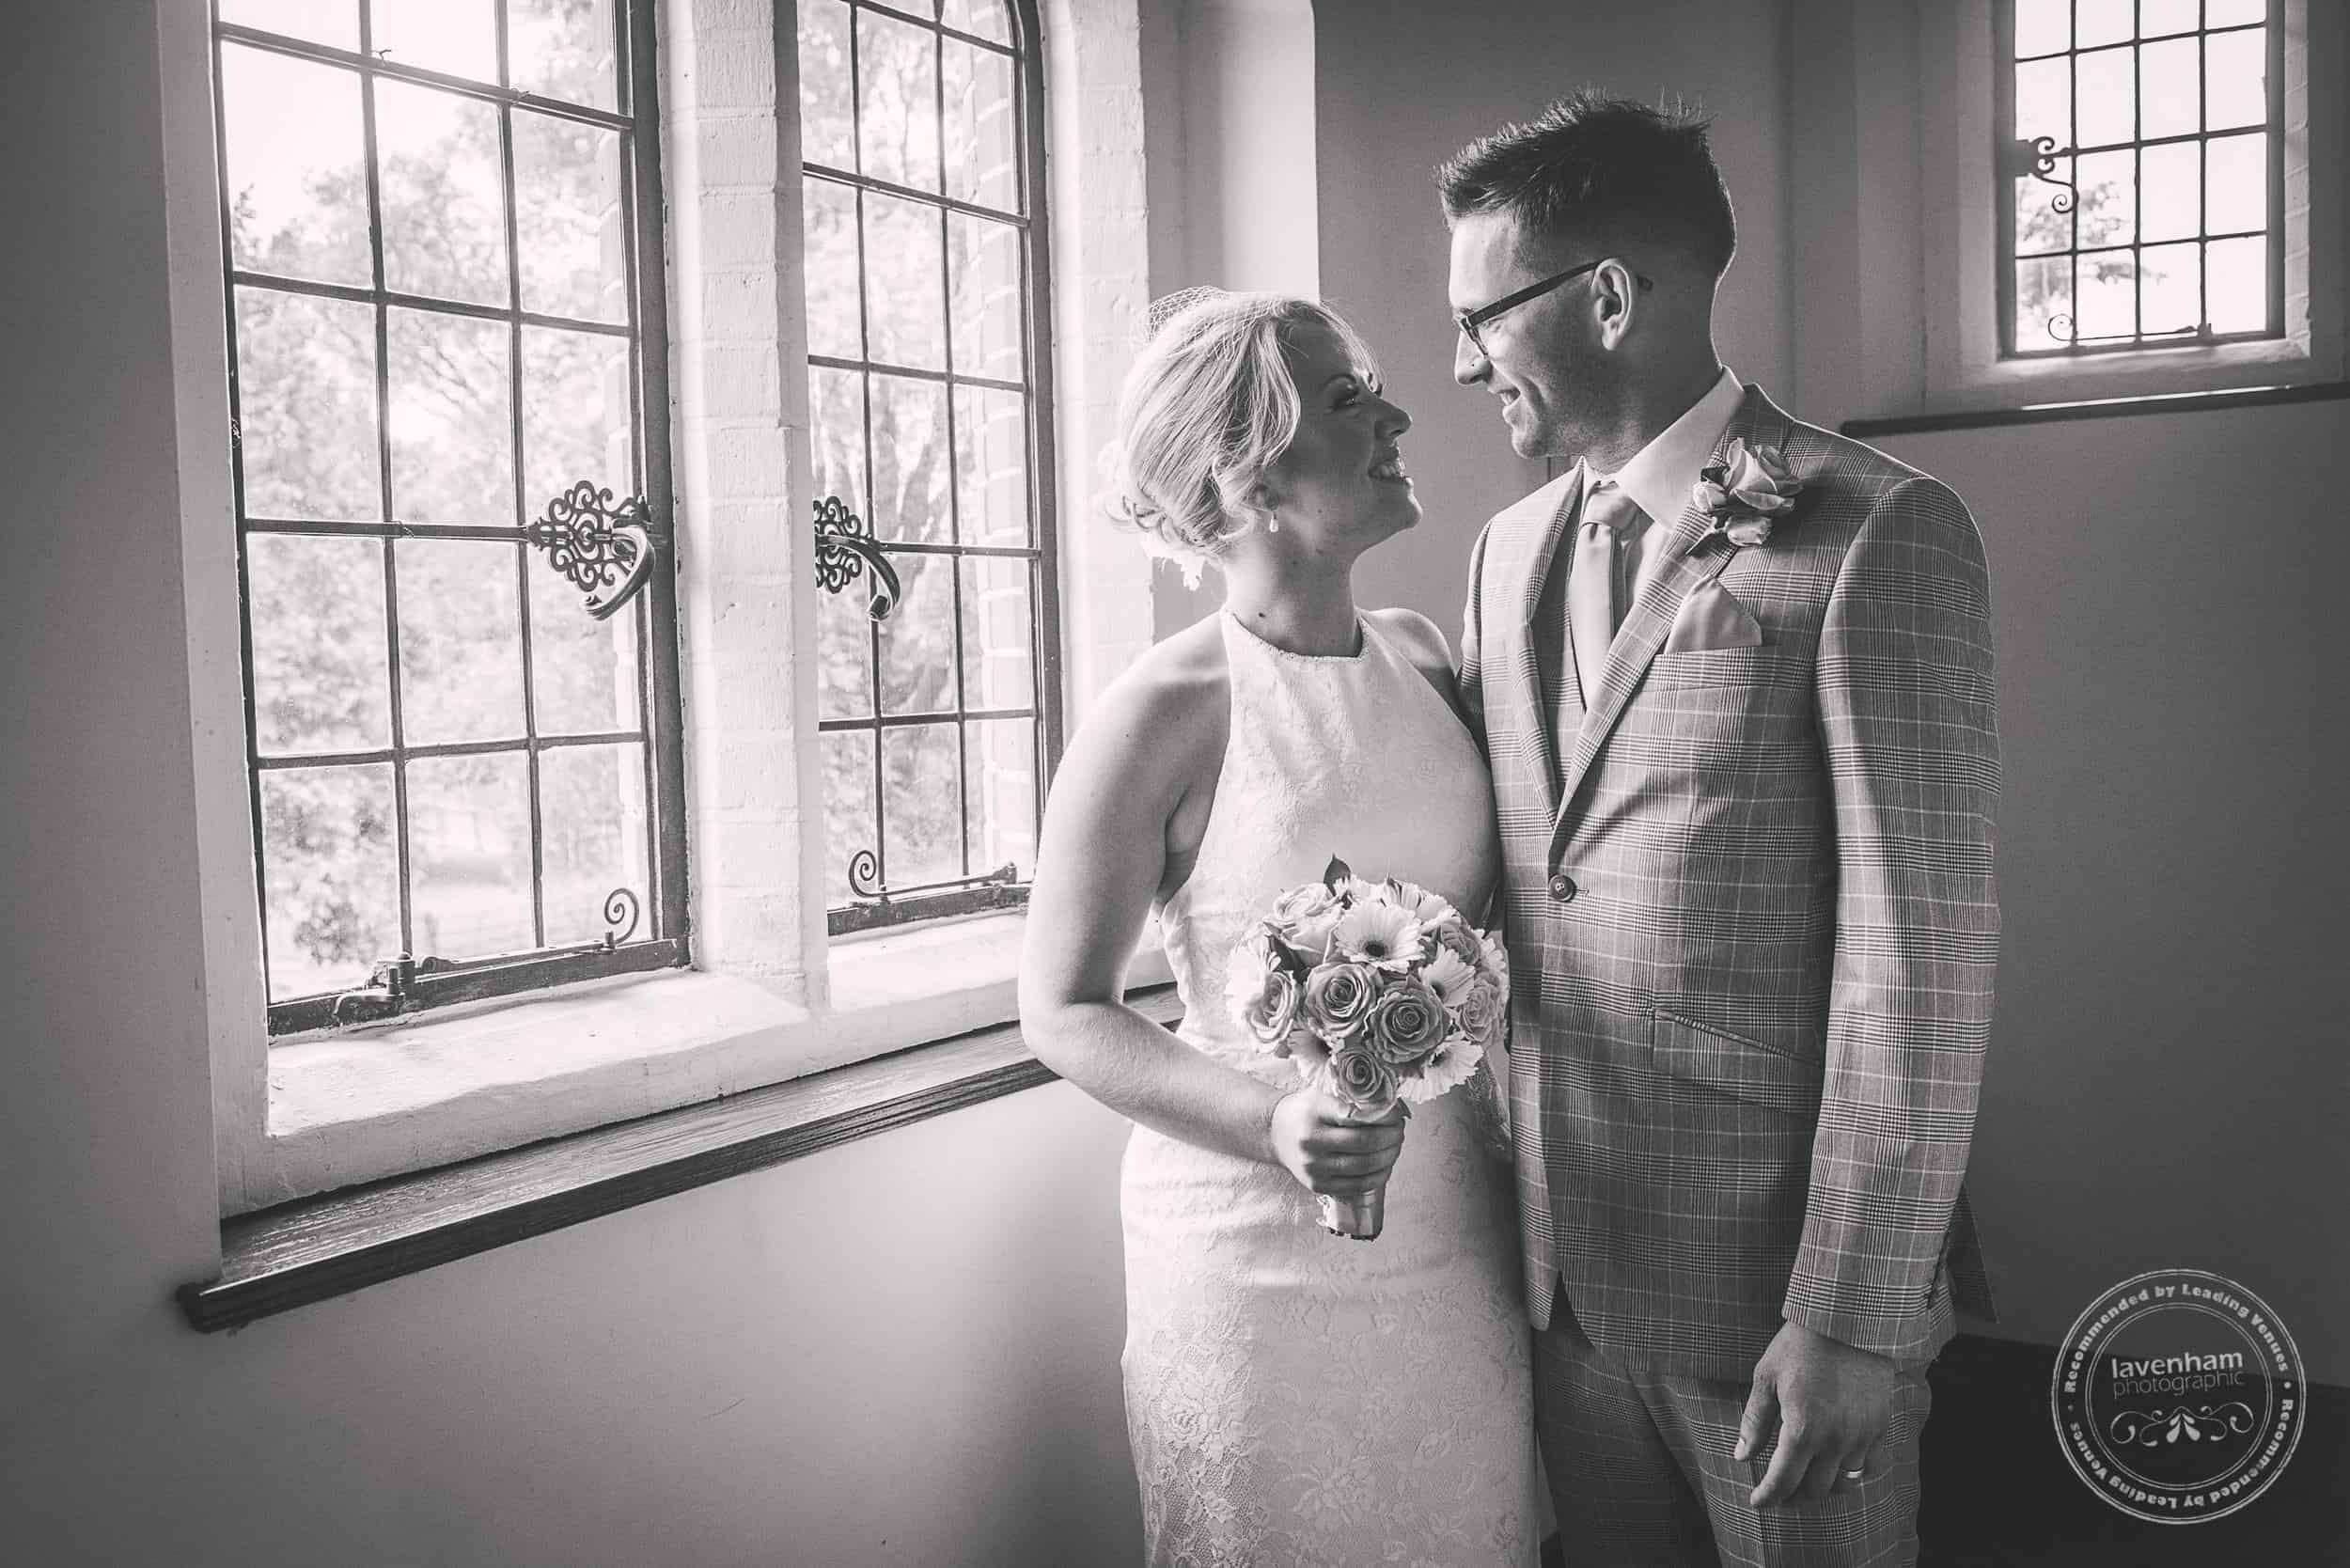 140717 Layer Marney Wedding Photography by Lavenham Photographic 046